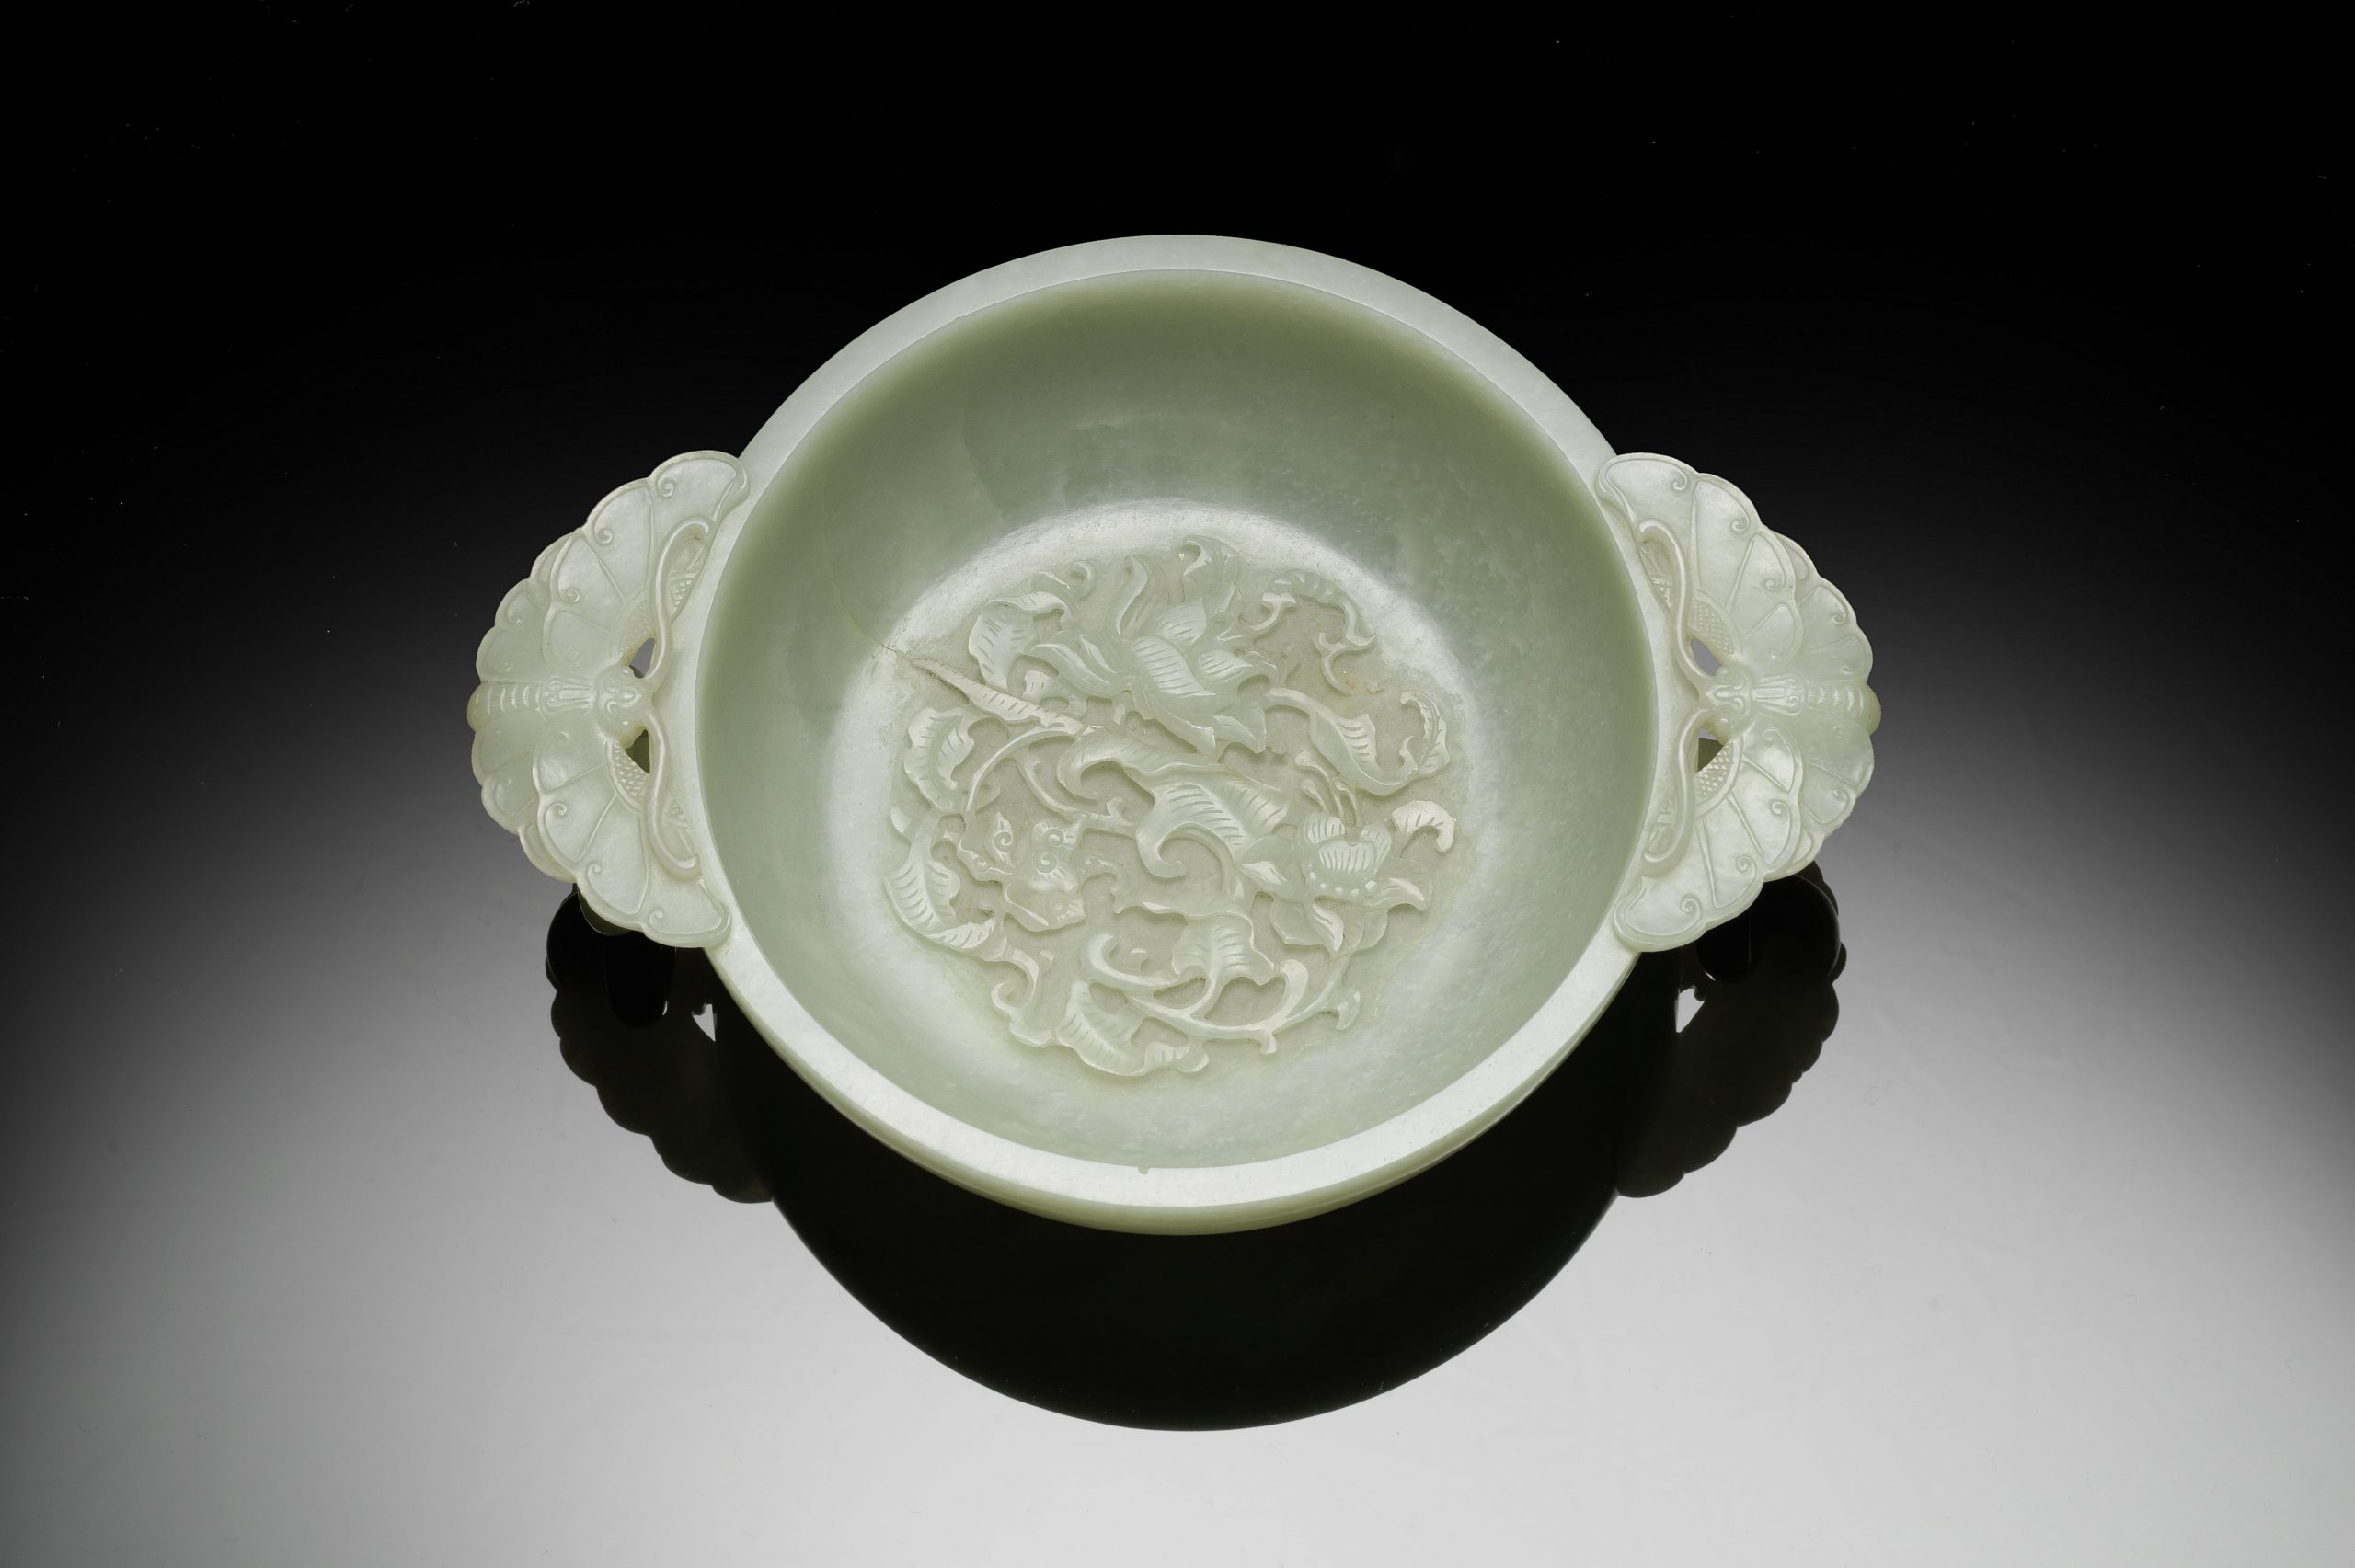 A very fine and rare pale green jade marriage bowl, Qianlong - Roger Keverne Ltd. Moving on.